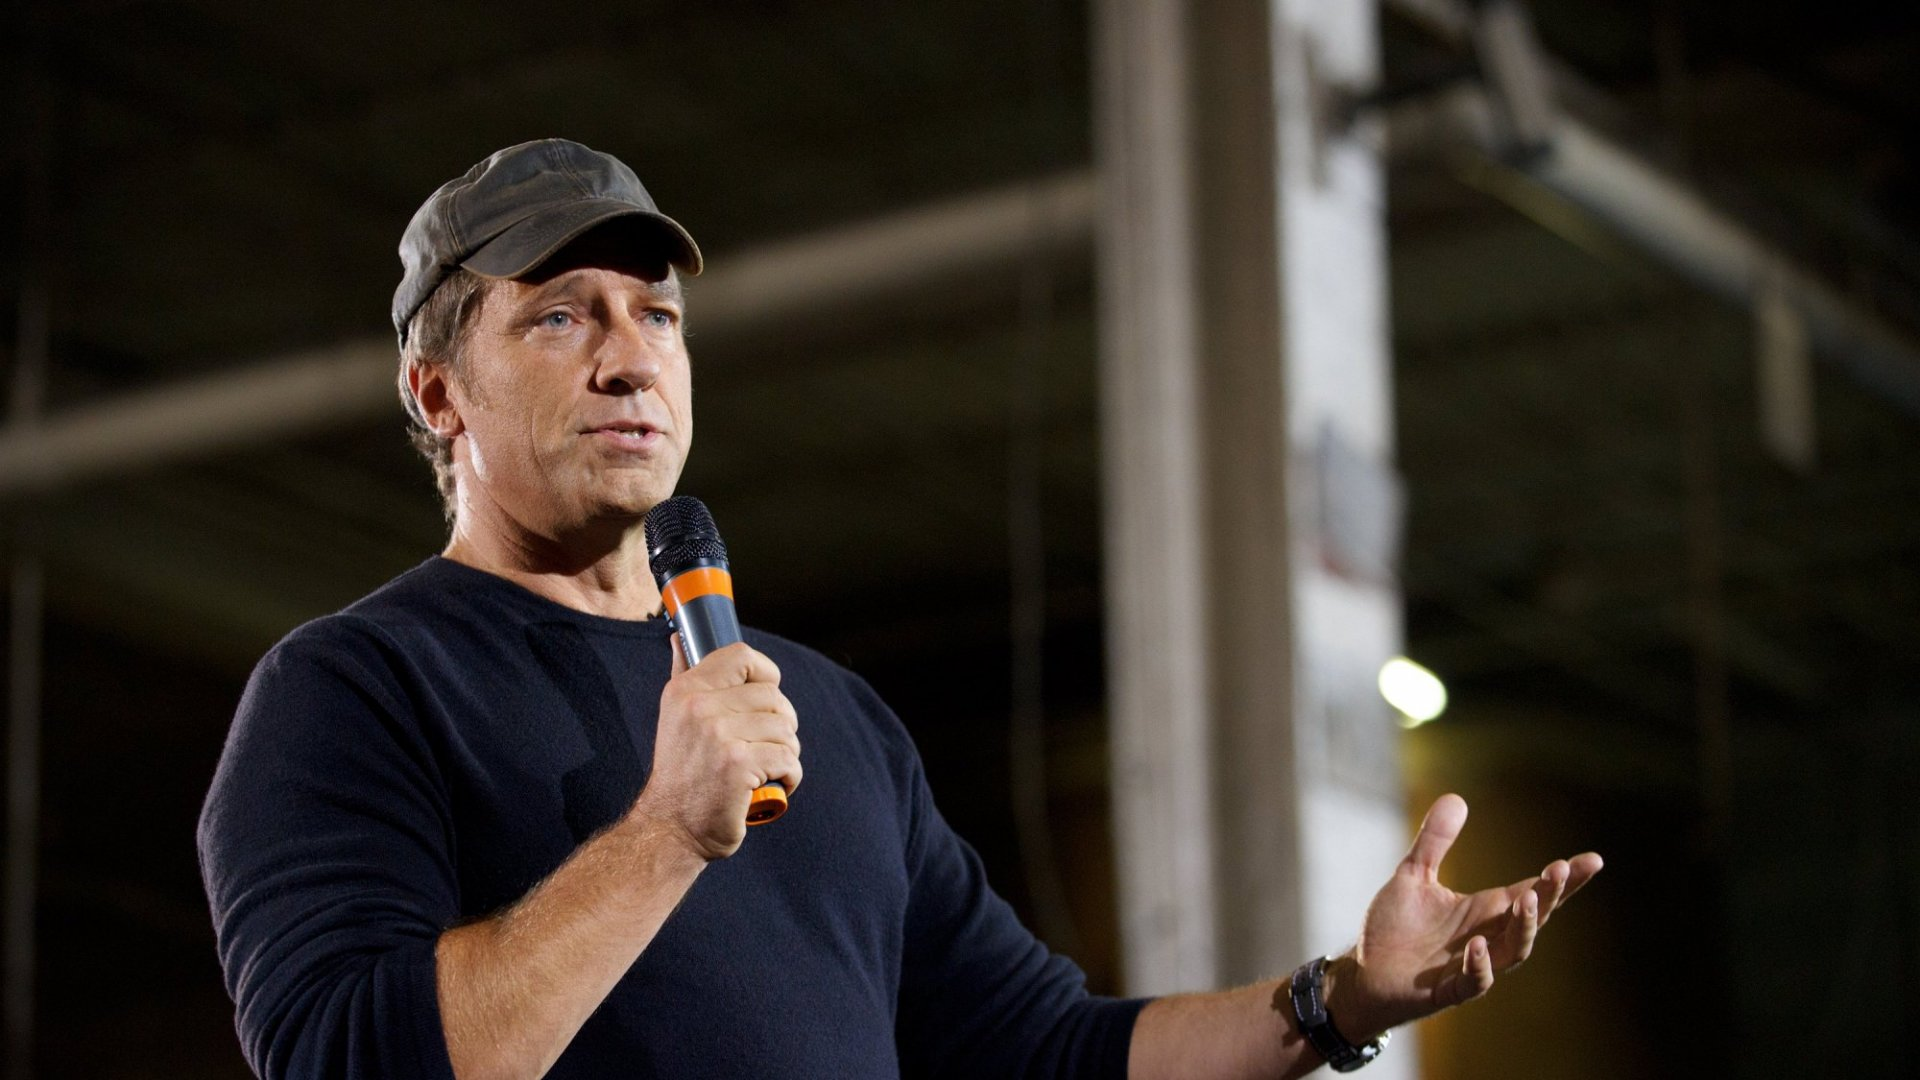 Mike Rowe of 'Dirty Jobs' on How to Be Successful at Any Job